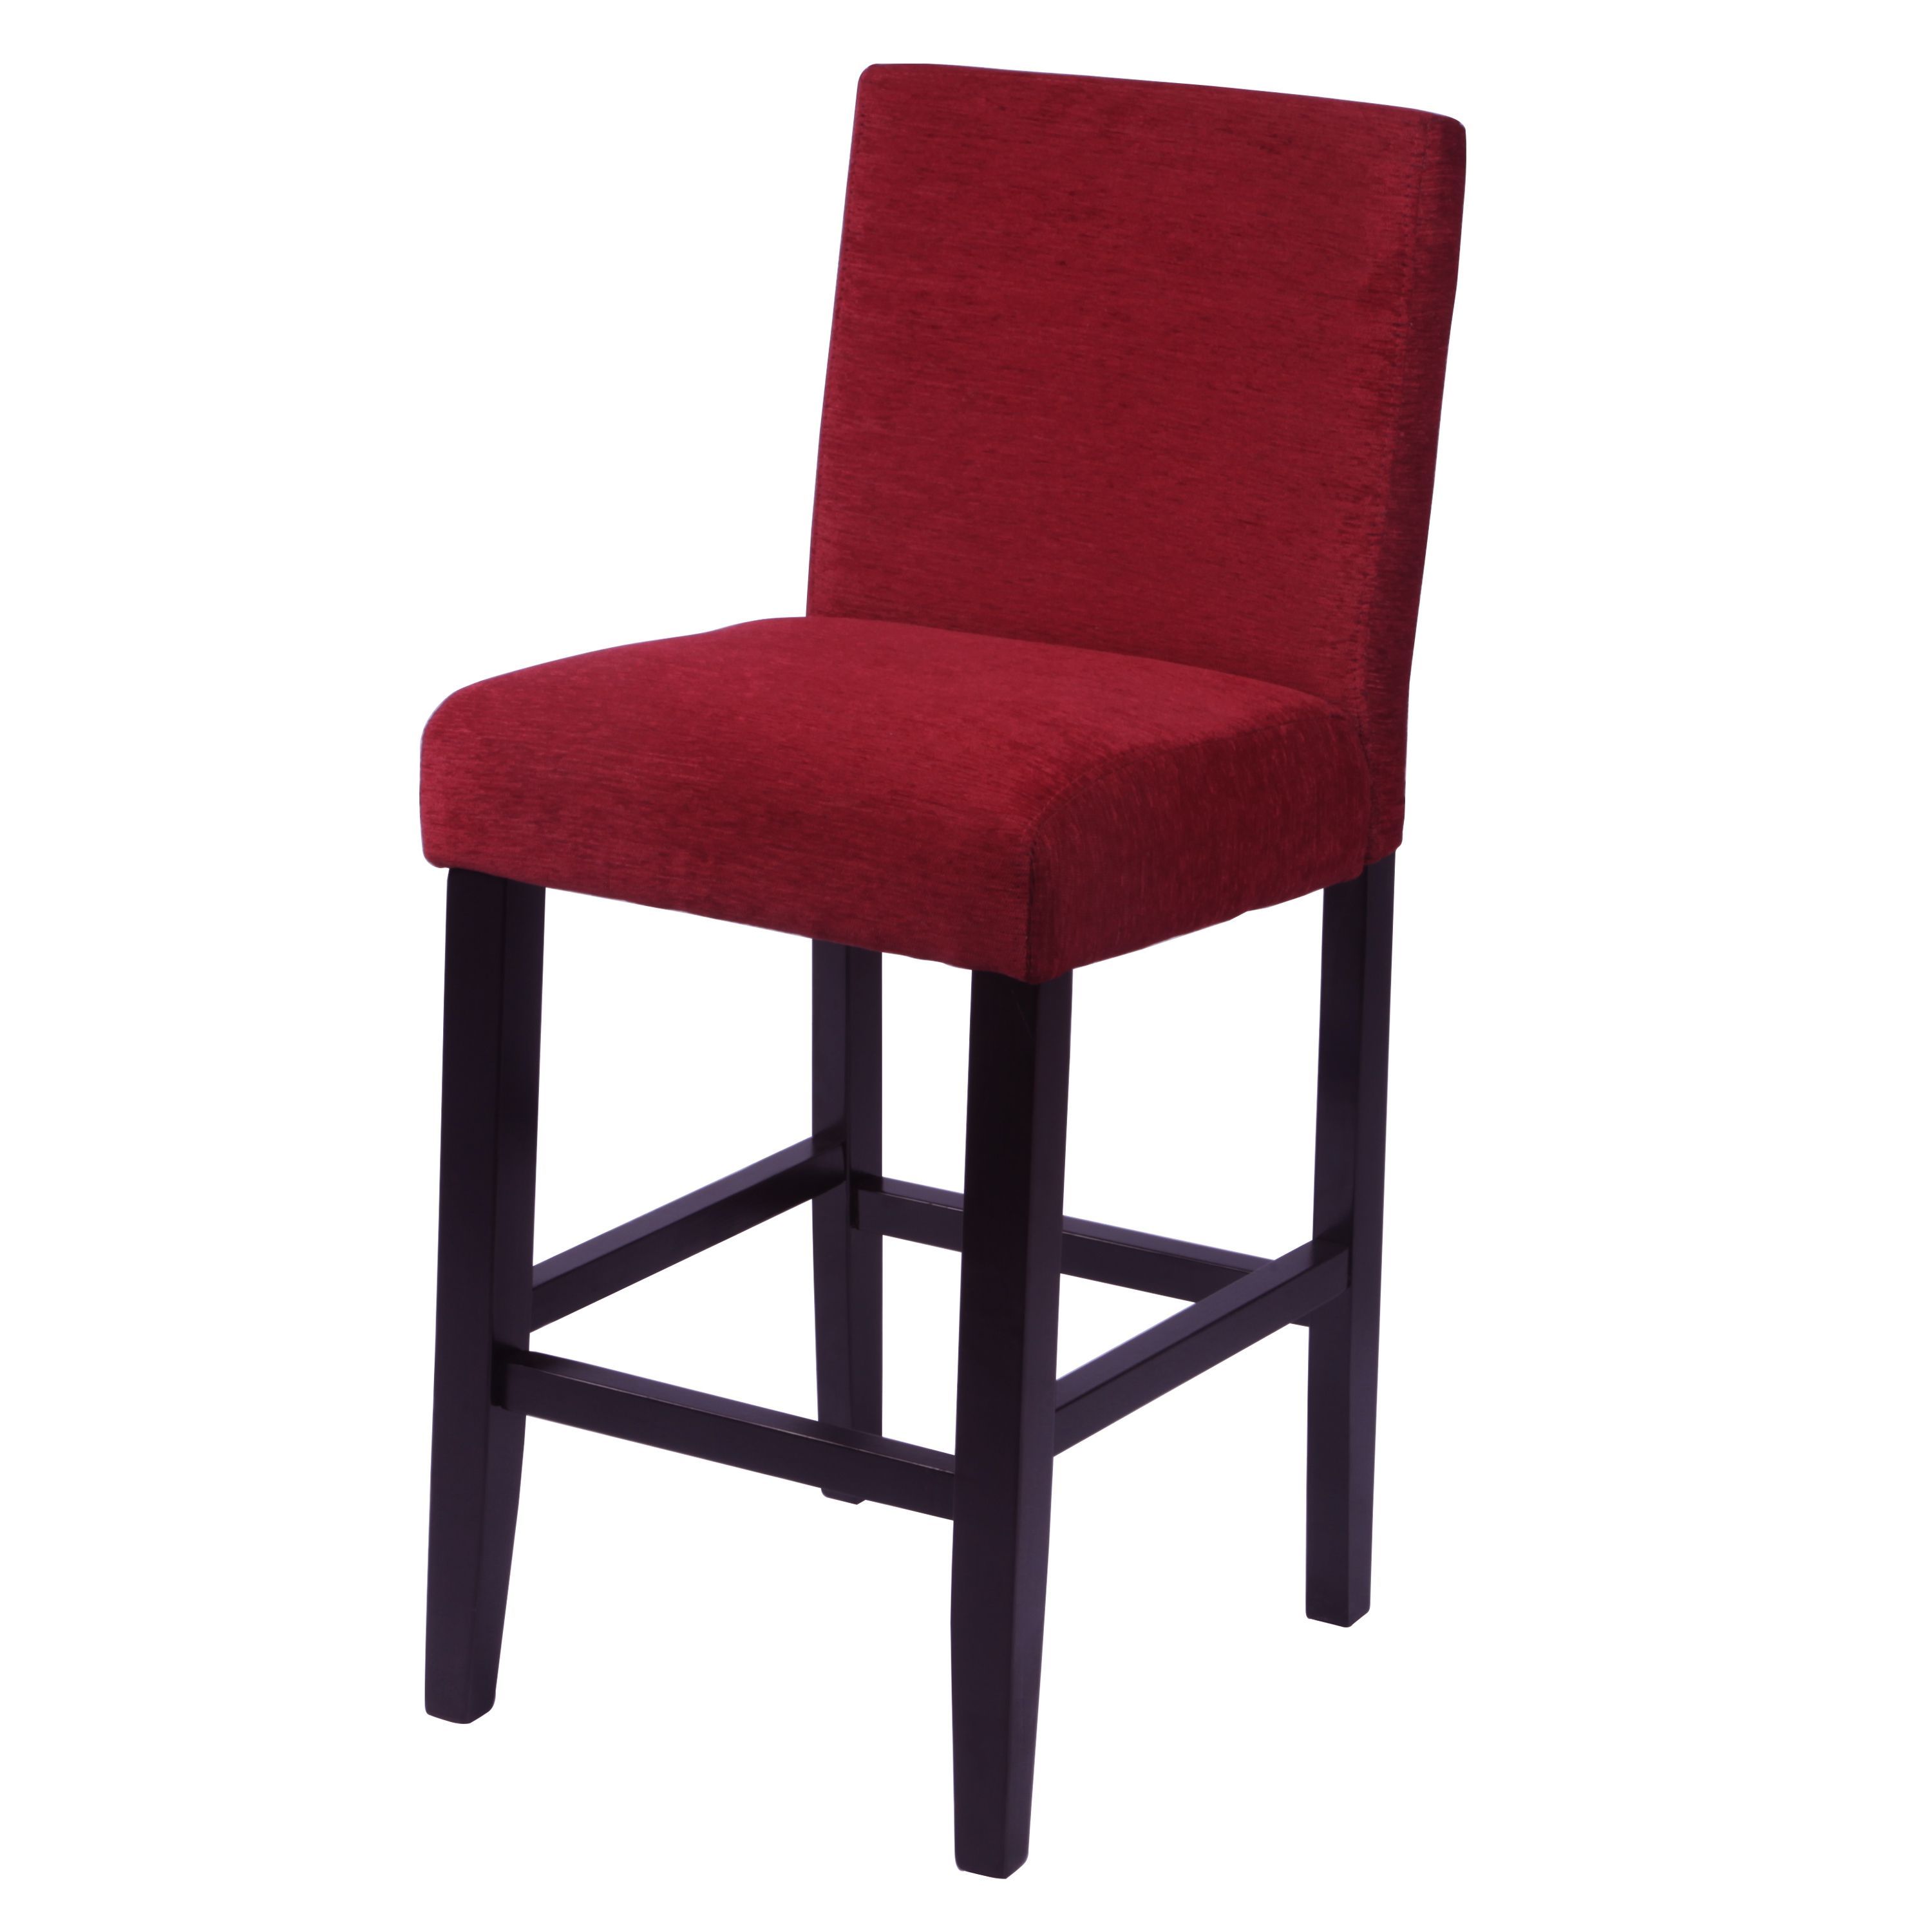 Fabulous Aprilia Upholstered Counter Chairs Set Of 2 Overstock Machost Co Dining Chair Design Ideas Machostcouk